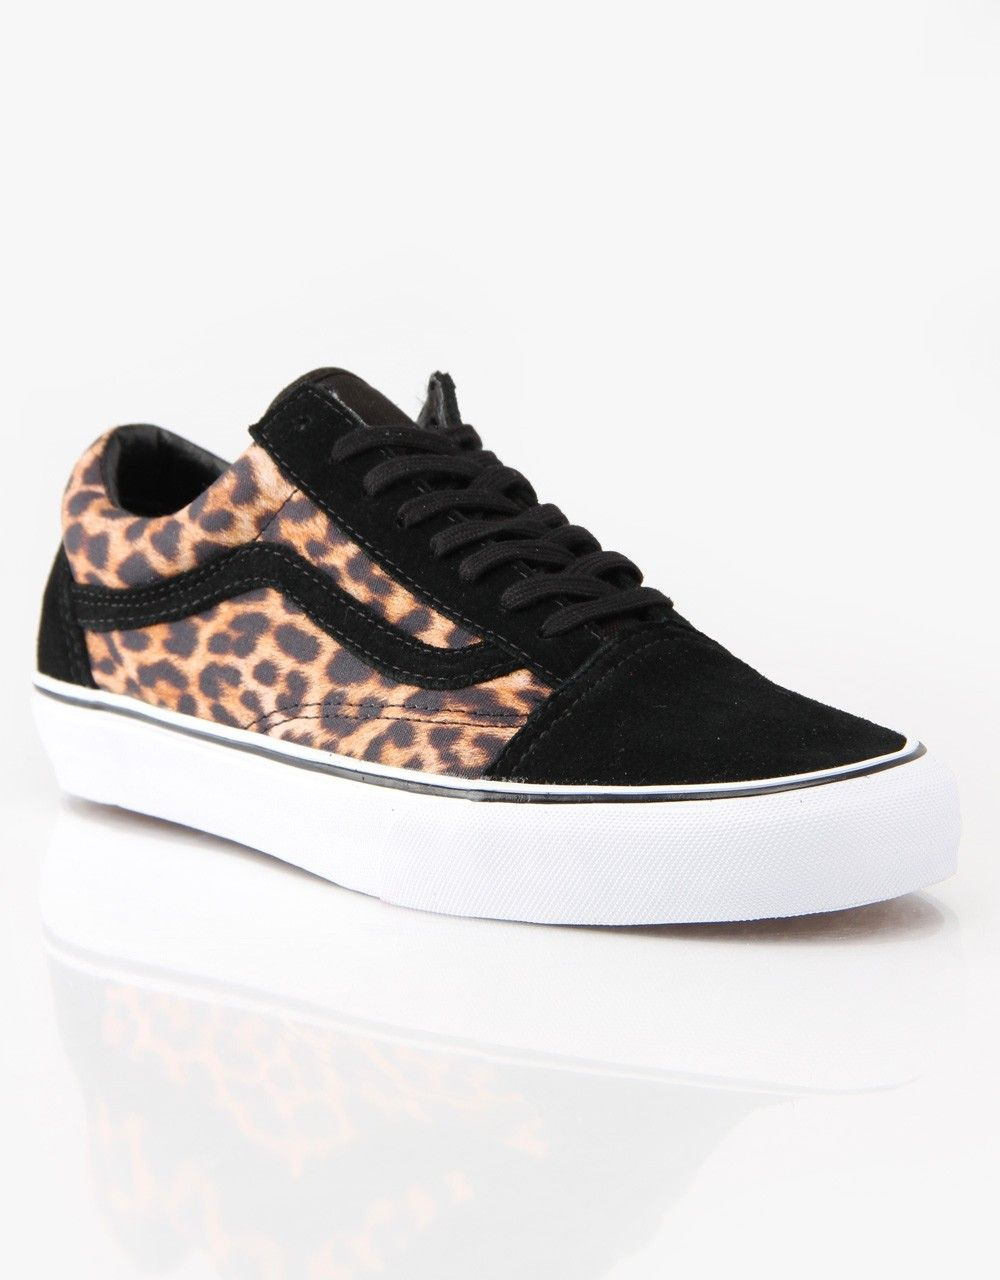 4c6ef2a176 Vans Old Skool Skate Shoes - Leopard Black from Route One